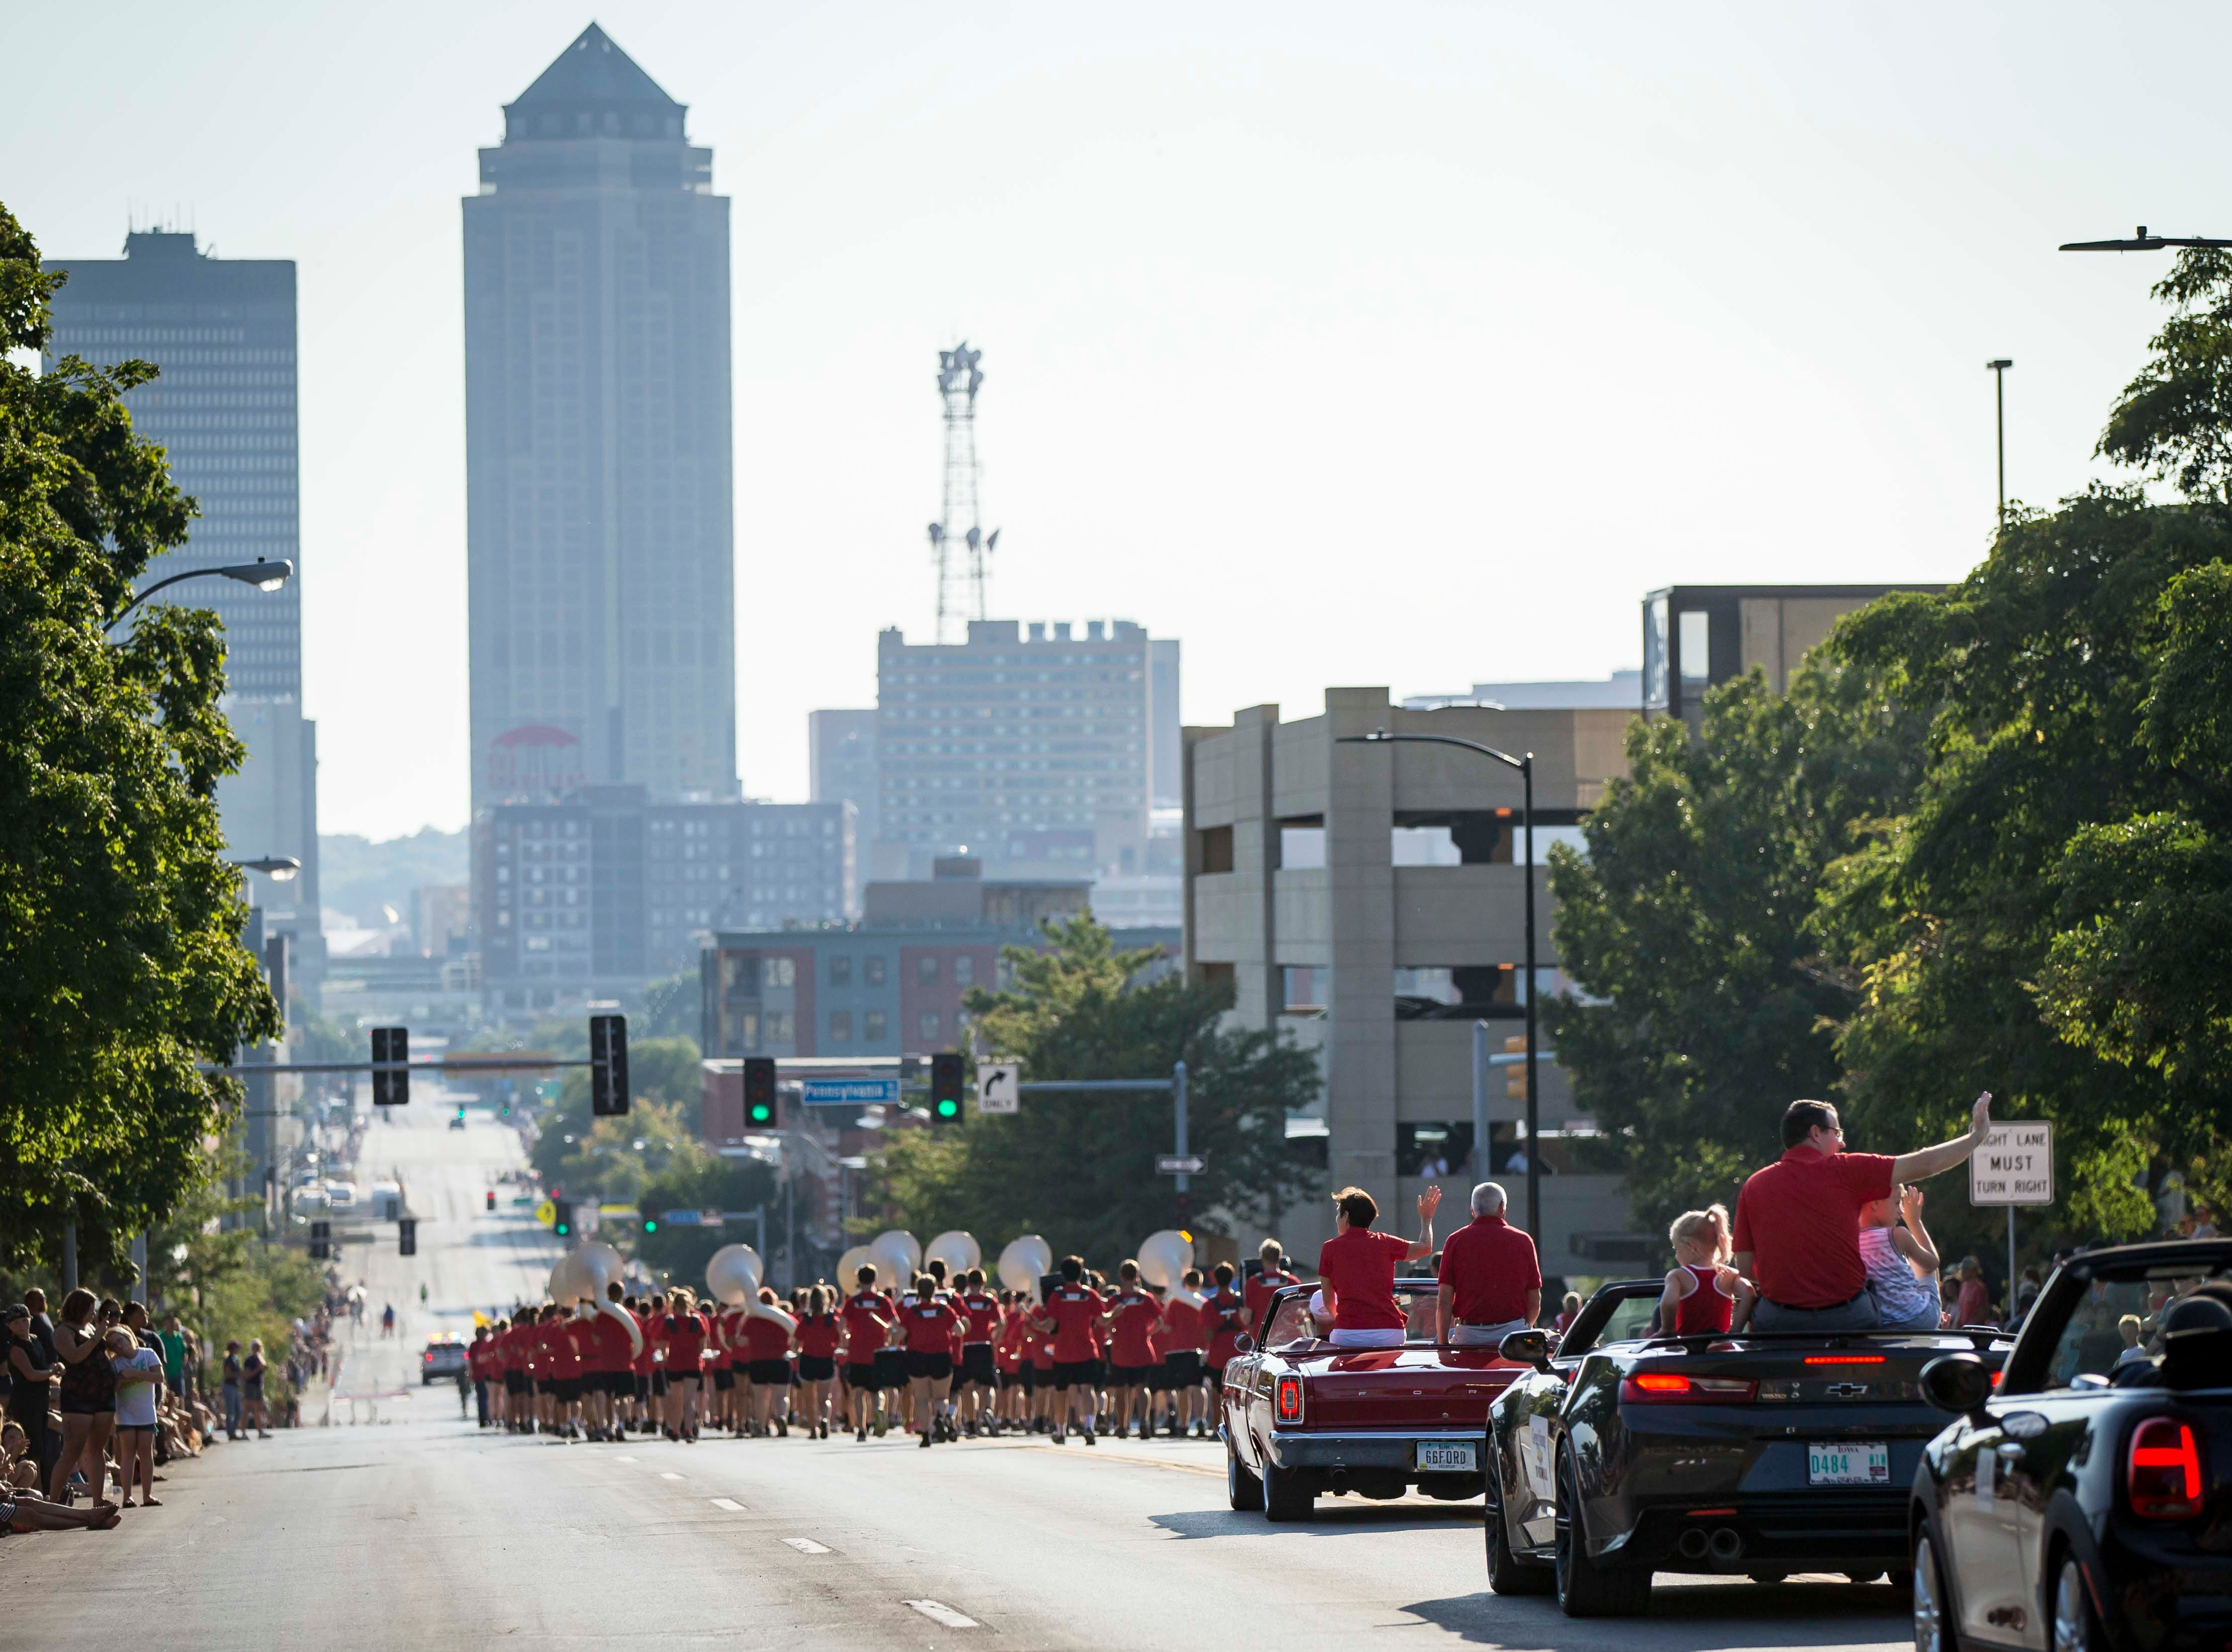 The 2018 Iowa State Fair parade follows Grand Ave. from the Statehouse to downtown Des Moines Wednesday, Aug. 8, 2018. The Iowa State Fair runs from Aug. 9Ð19.